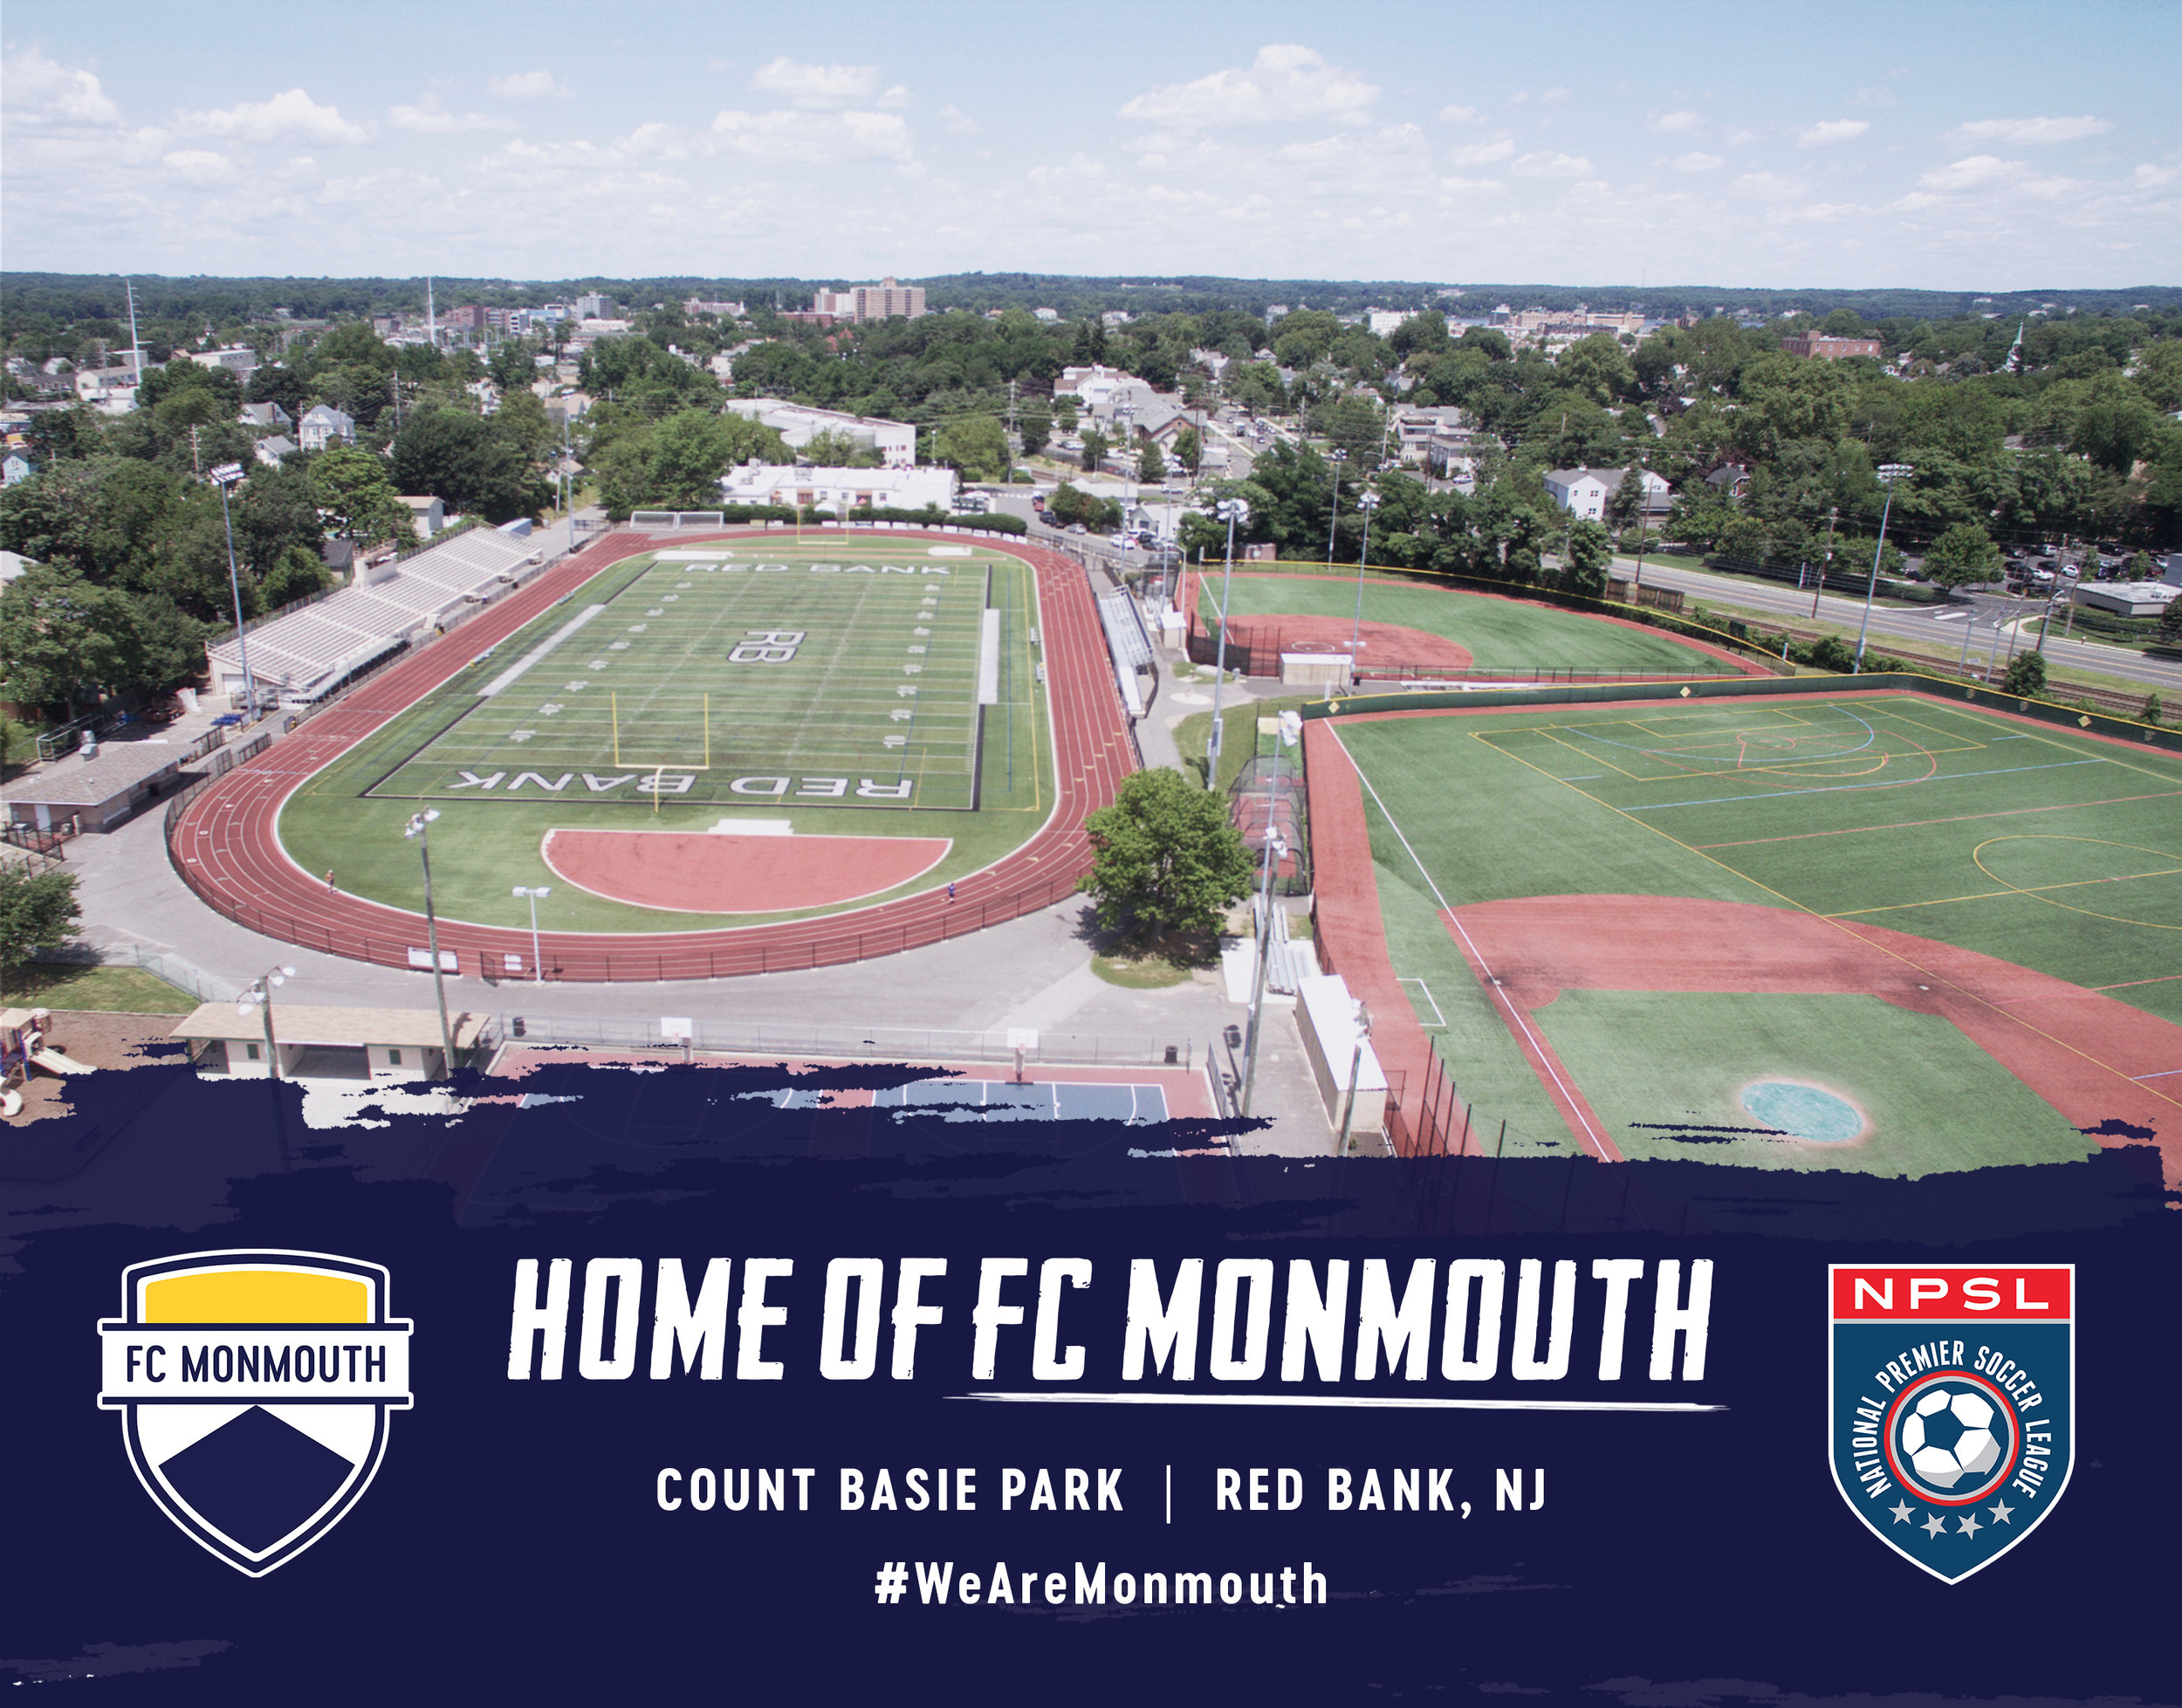 Count Basie Park - Red Bank - FC Monmouth.jpg